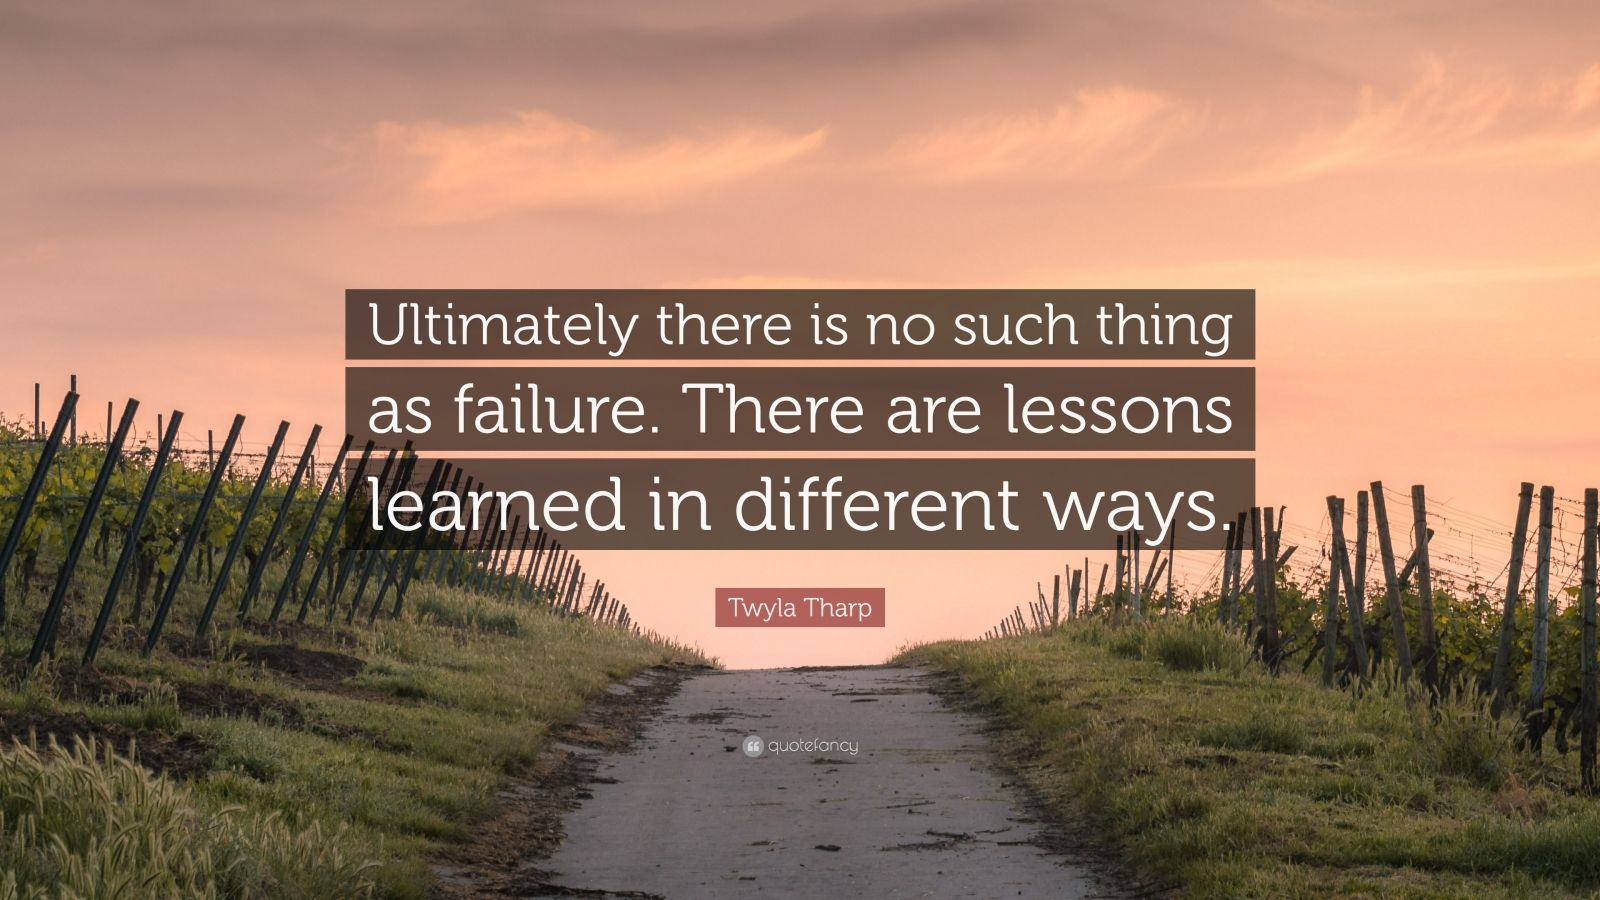 """Twyla Tharp Quote: """"Ultimately there is no such thing as failure. There are lessons learned in different ways."""""""